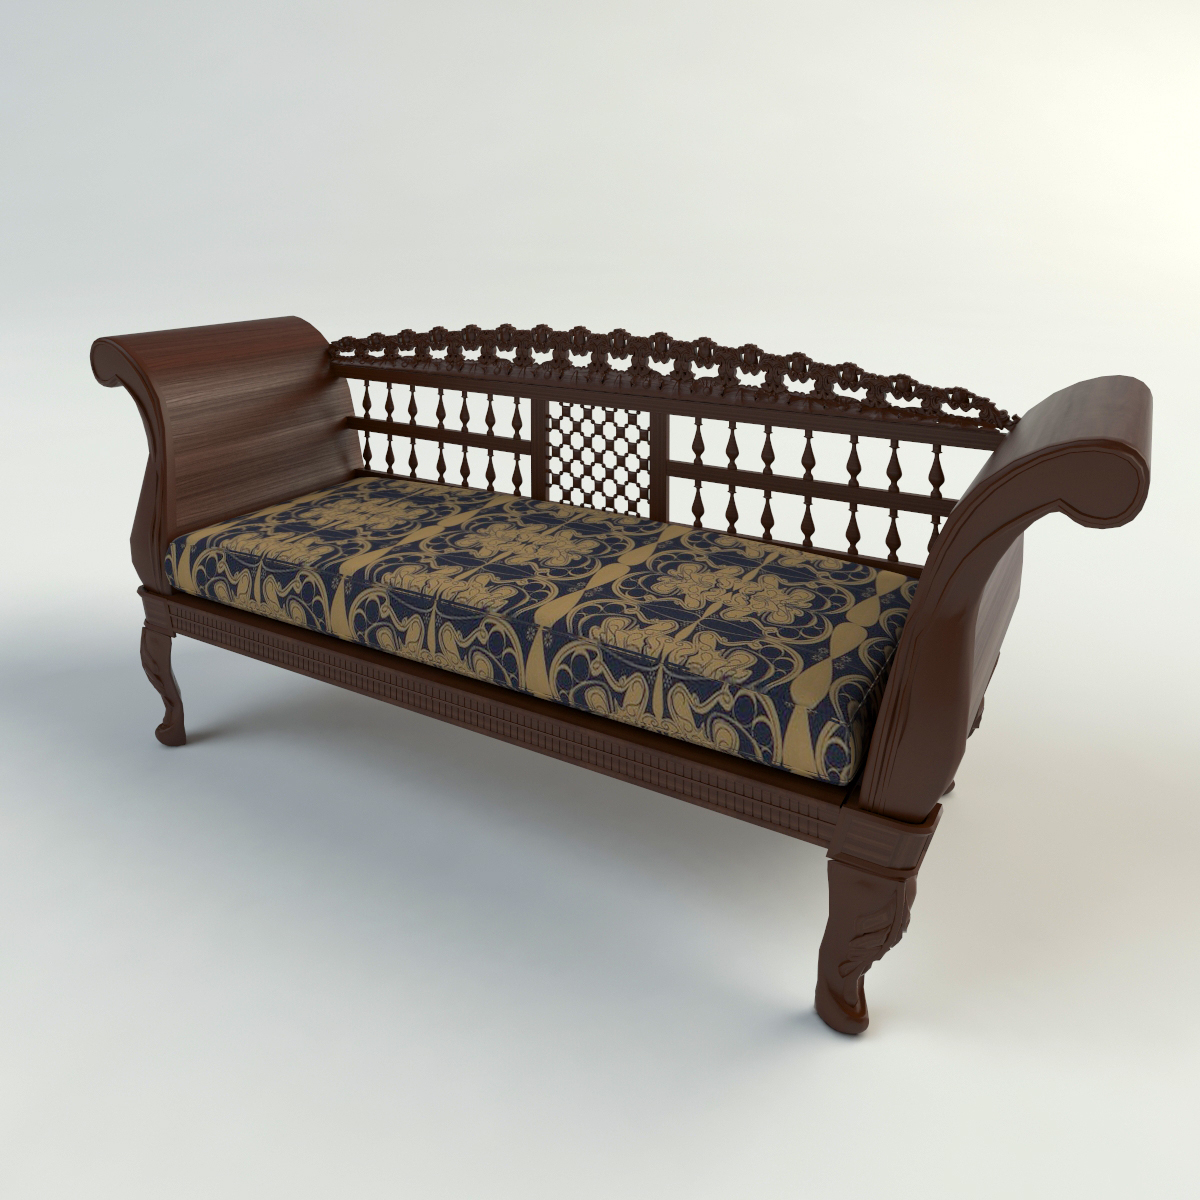 Brilliant Ornate Couch Gmtry Best Dining Table And Chair Ideas Images Gmtryco